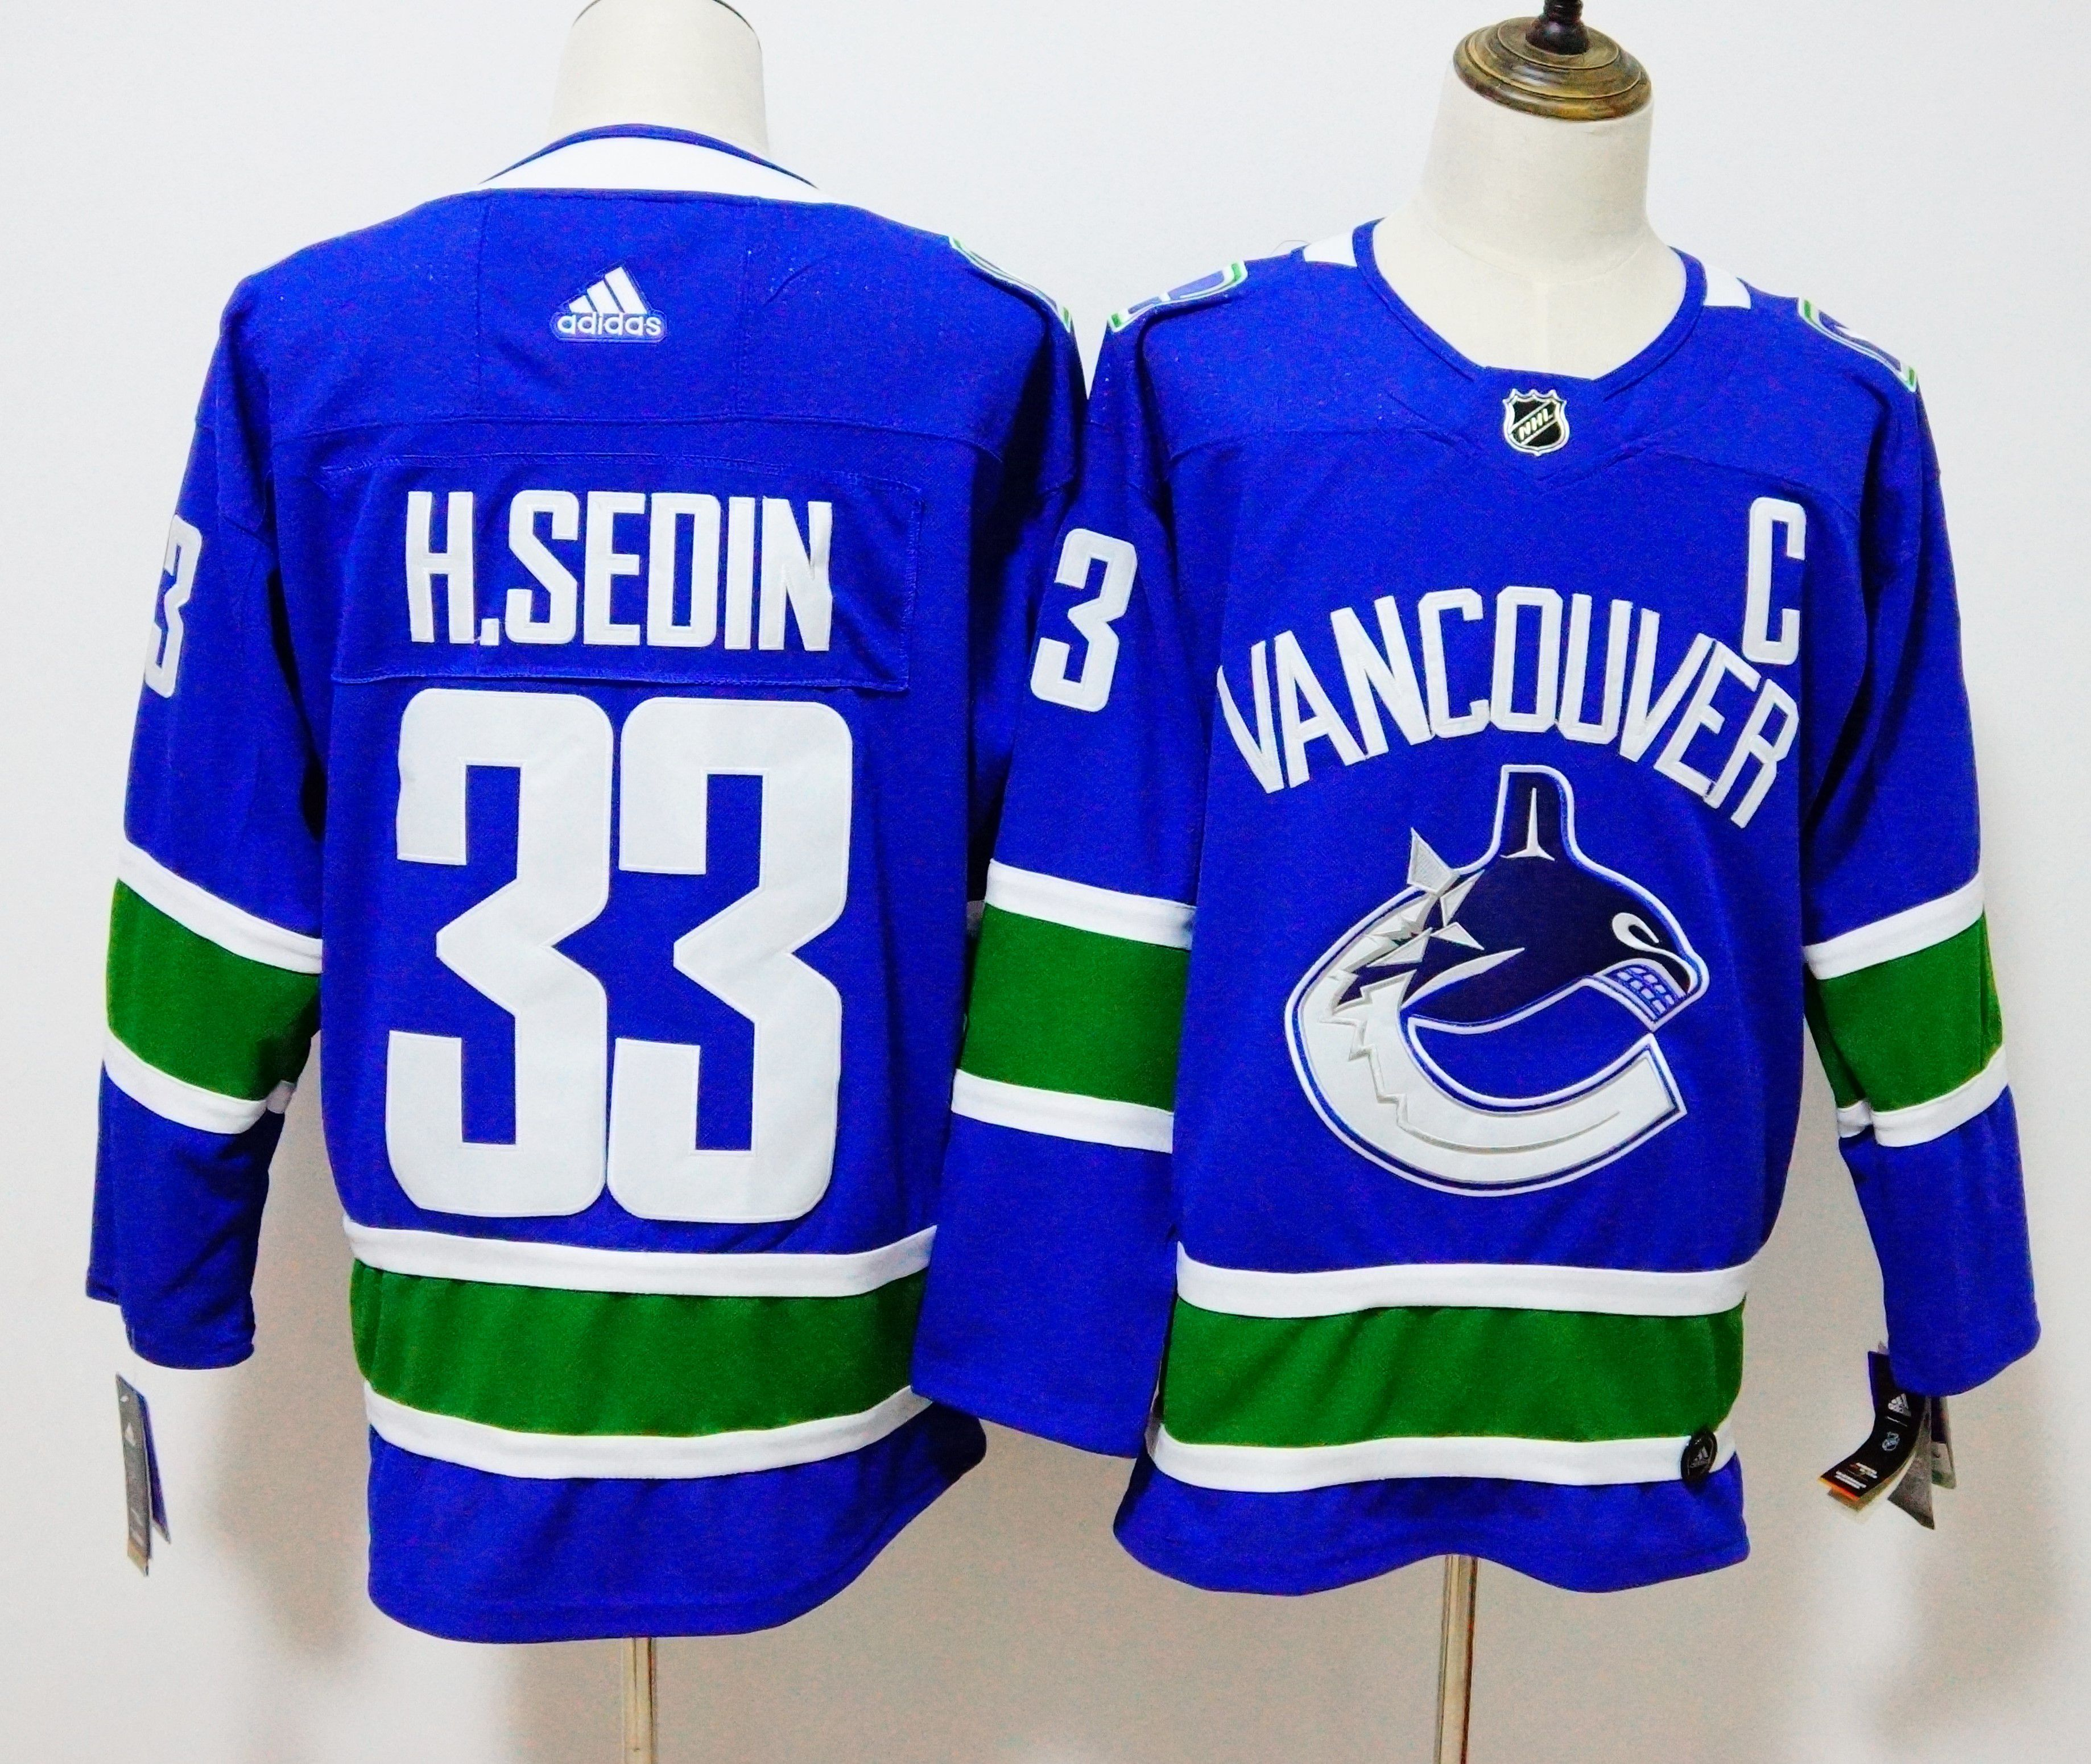 Men Vancouver Canucks 33 H.Sedin Blue Hockey Stitched Adidas NHL Jerseys